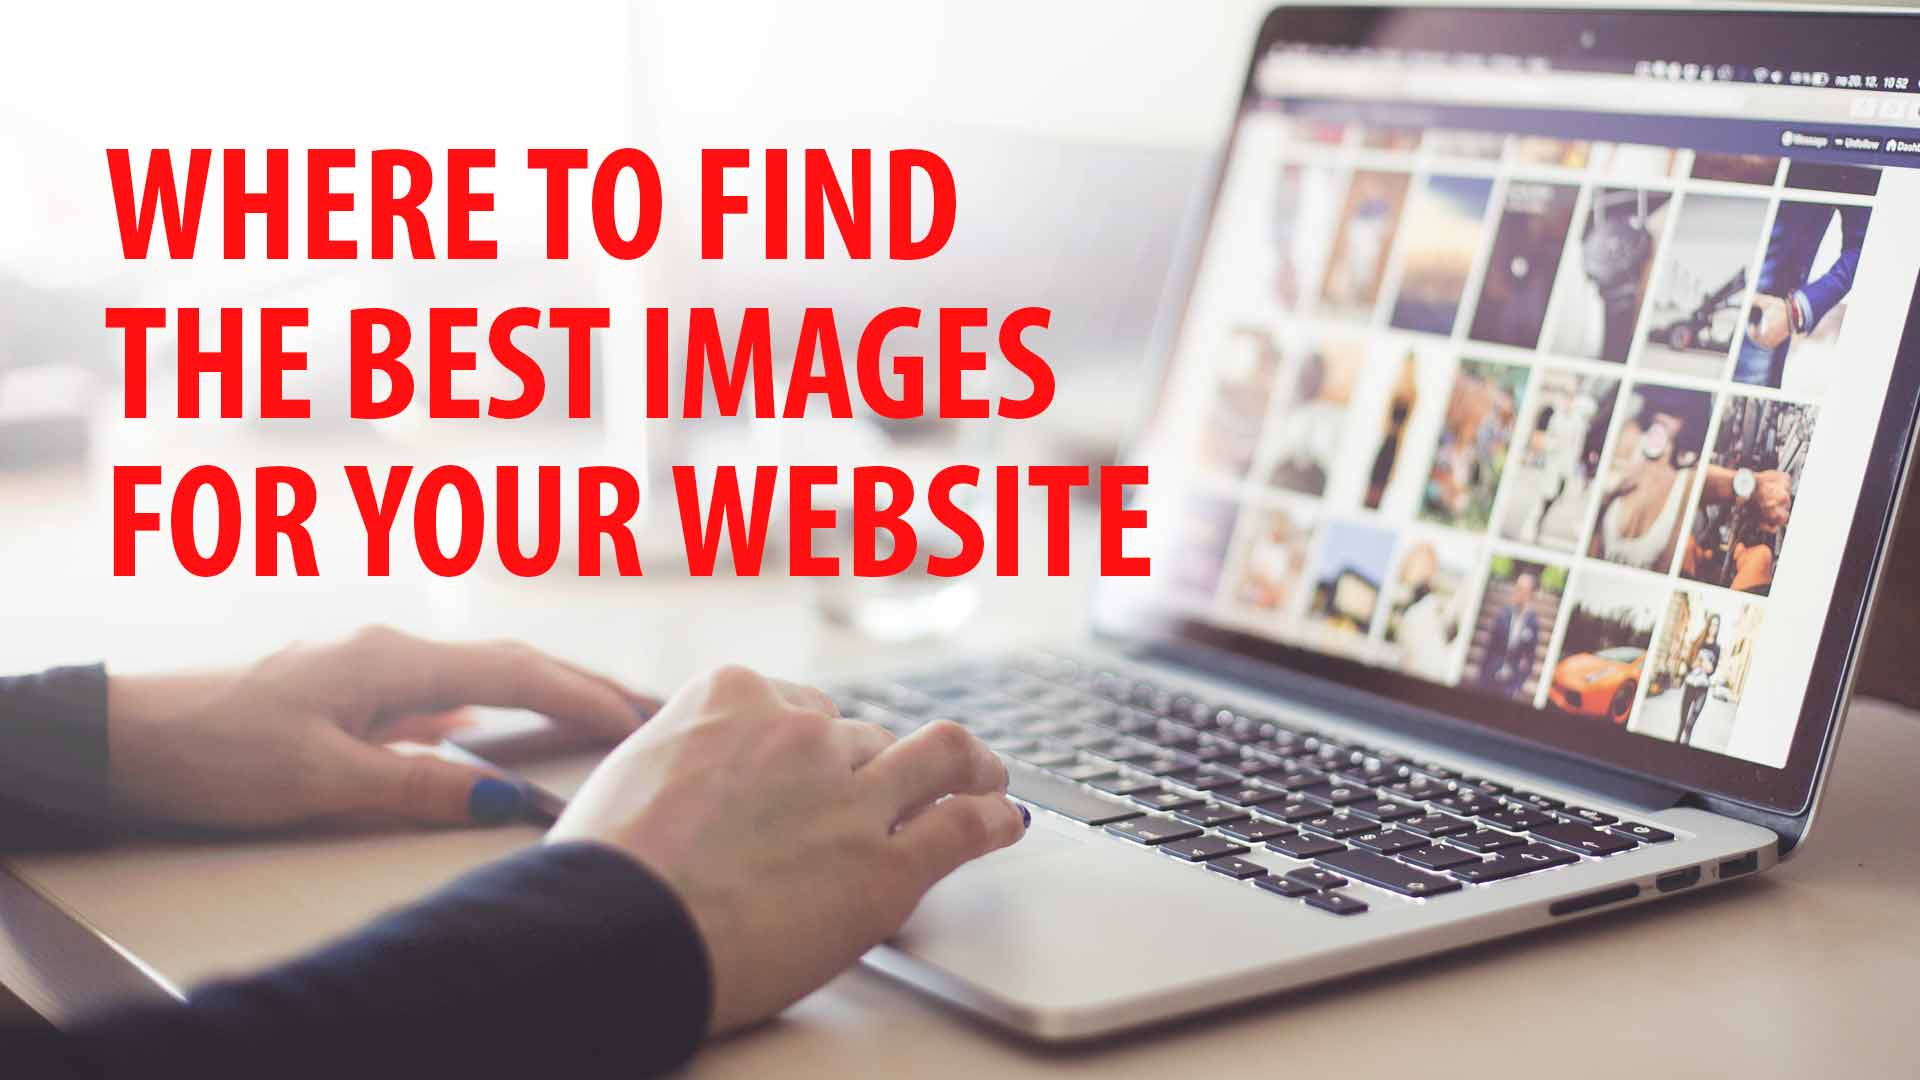 where-to-find-the-best-images-for-your-website-hero